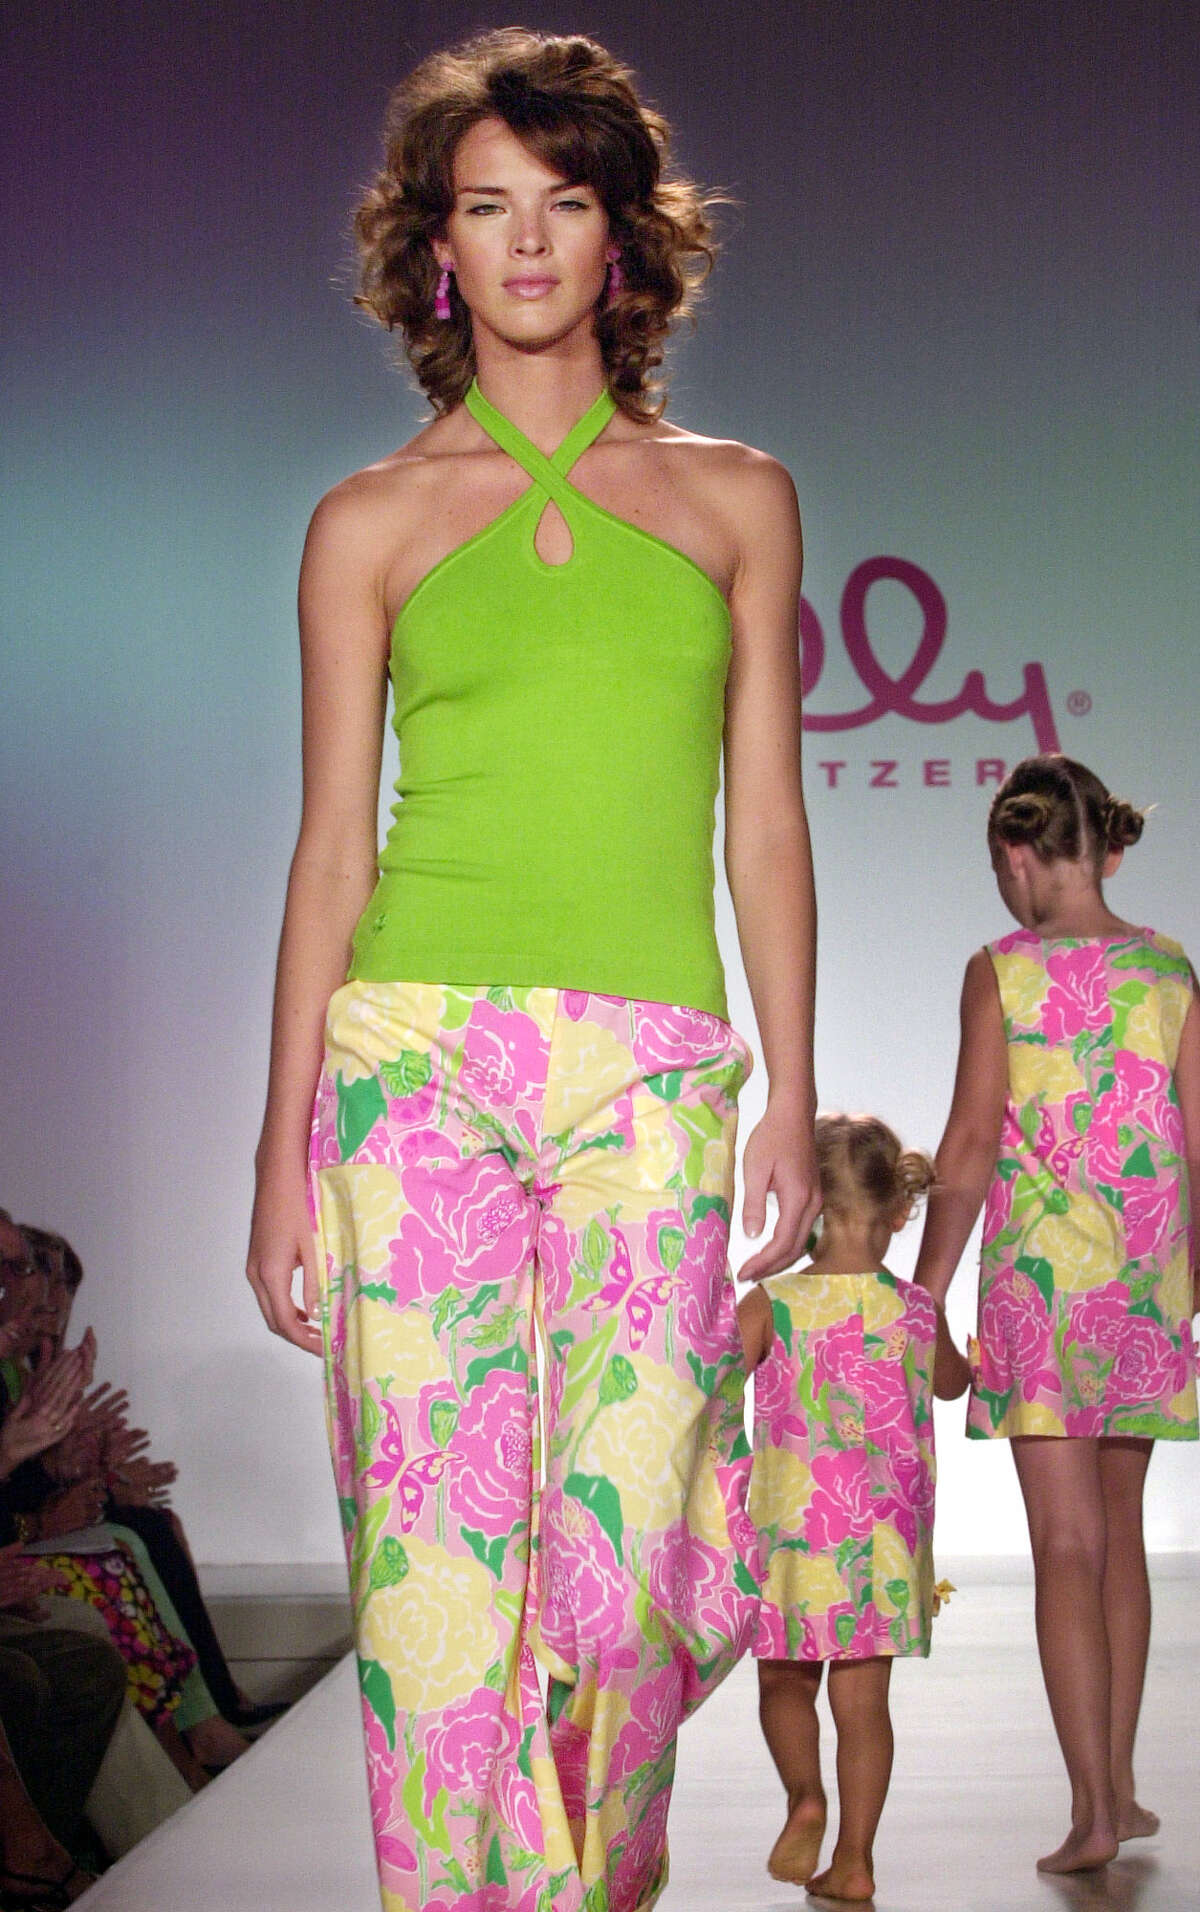 A model wears a shoofly jesse pants and everglade green jaime halter, while child models wear shoofly lilly dresses during the showing of Lilly Pulitzer spring 2003 fashions in New York, Saturday Sept. 21, 2002.